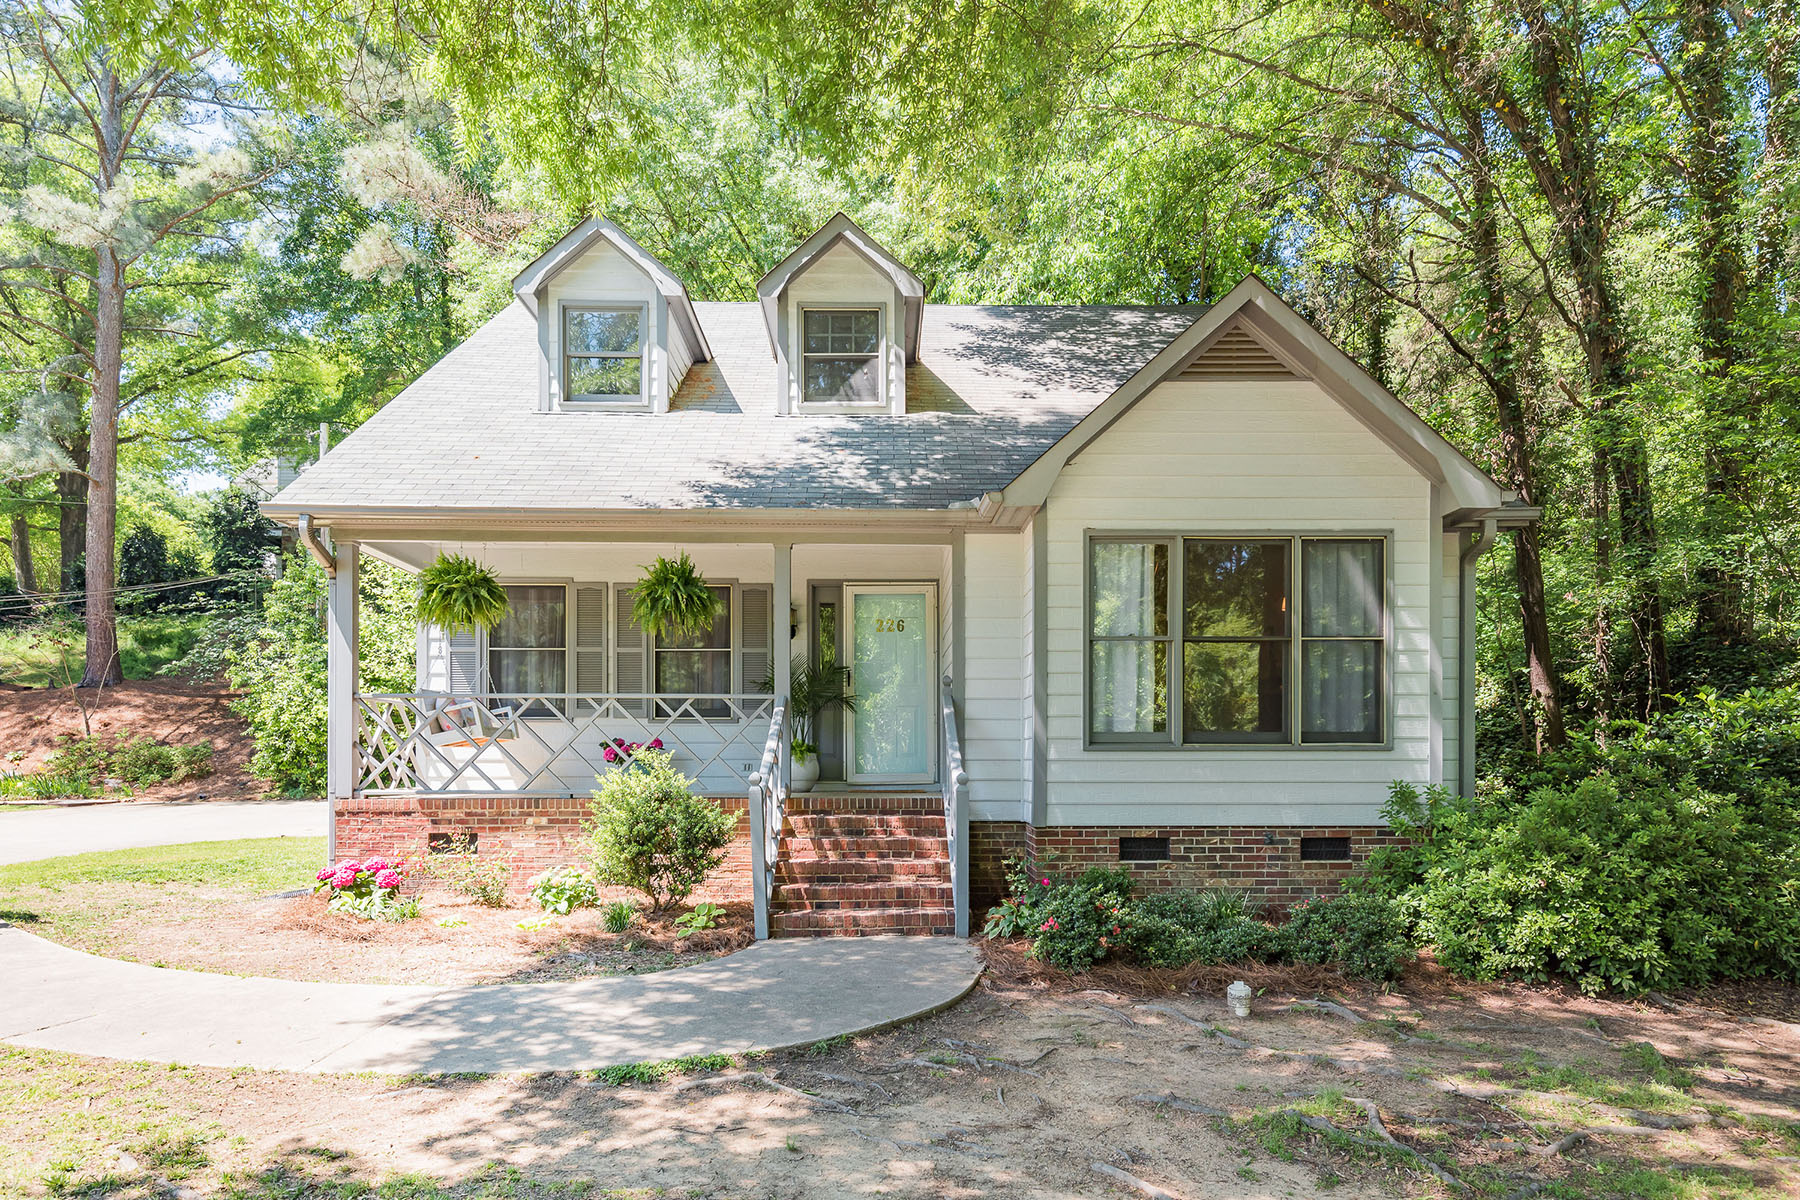 Single Family Homes for Sale at HILLCREST 226 Virginia St Concord, North Carolina 28025 United States